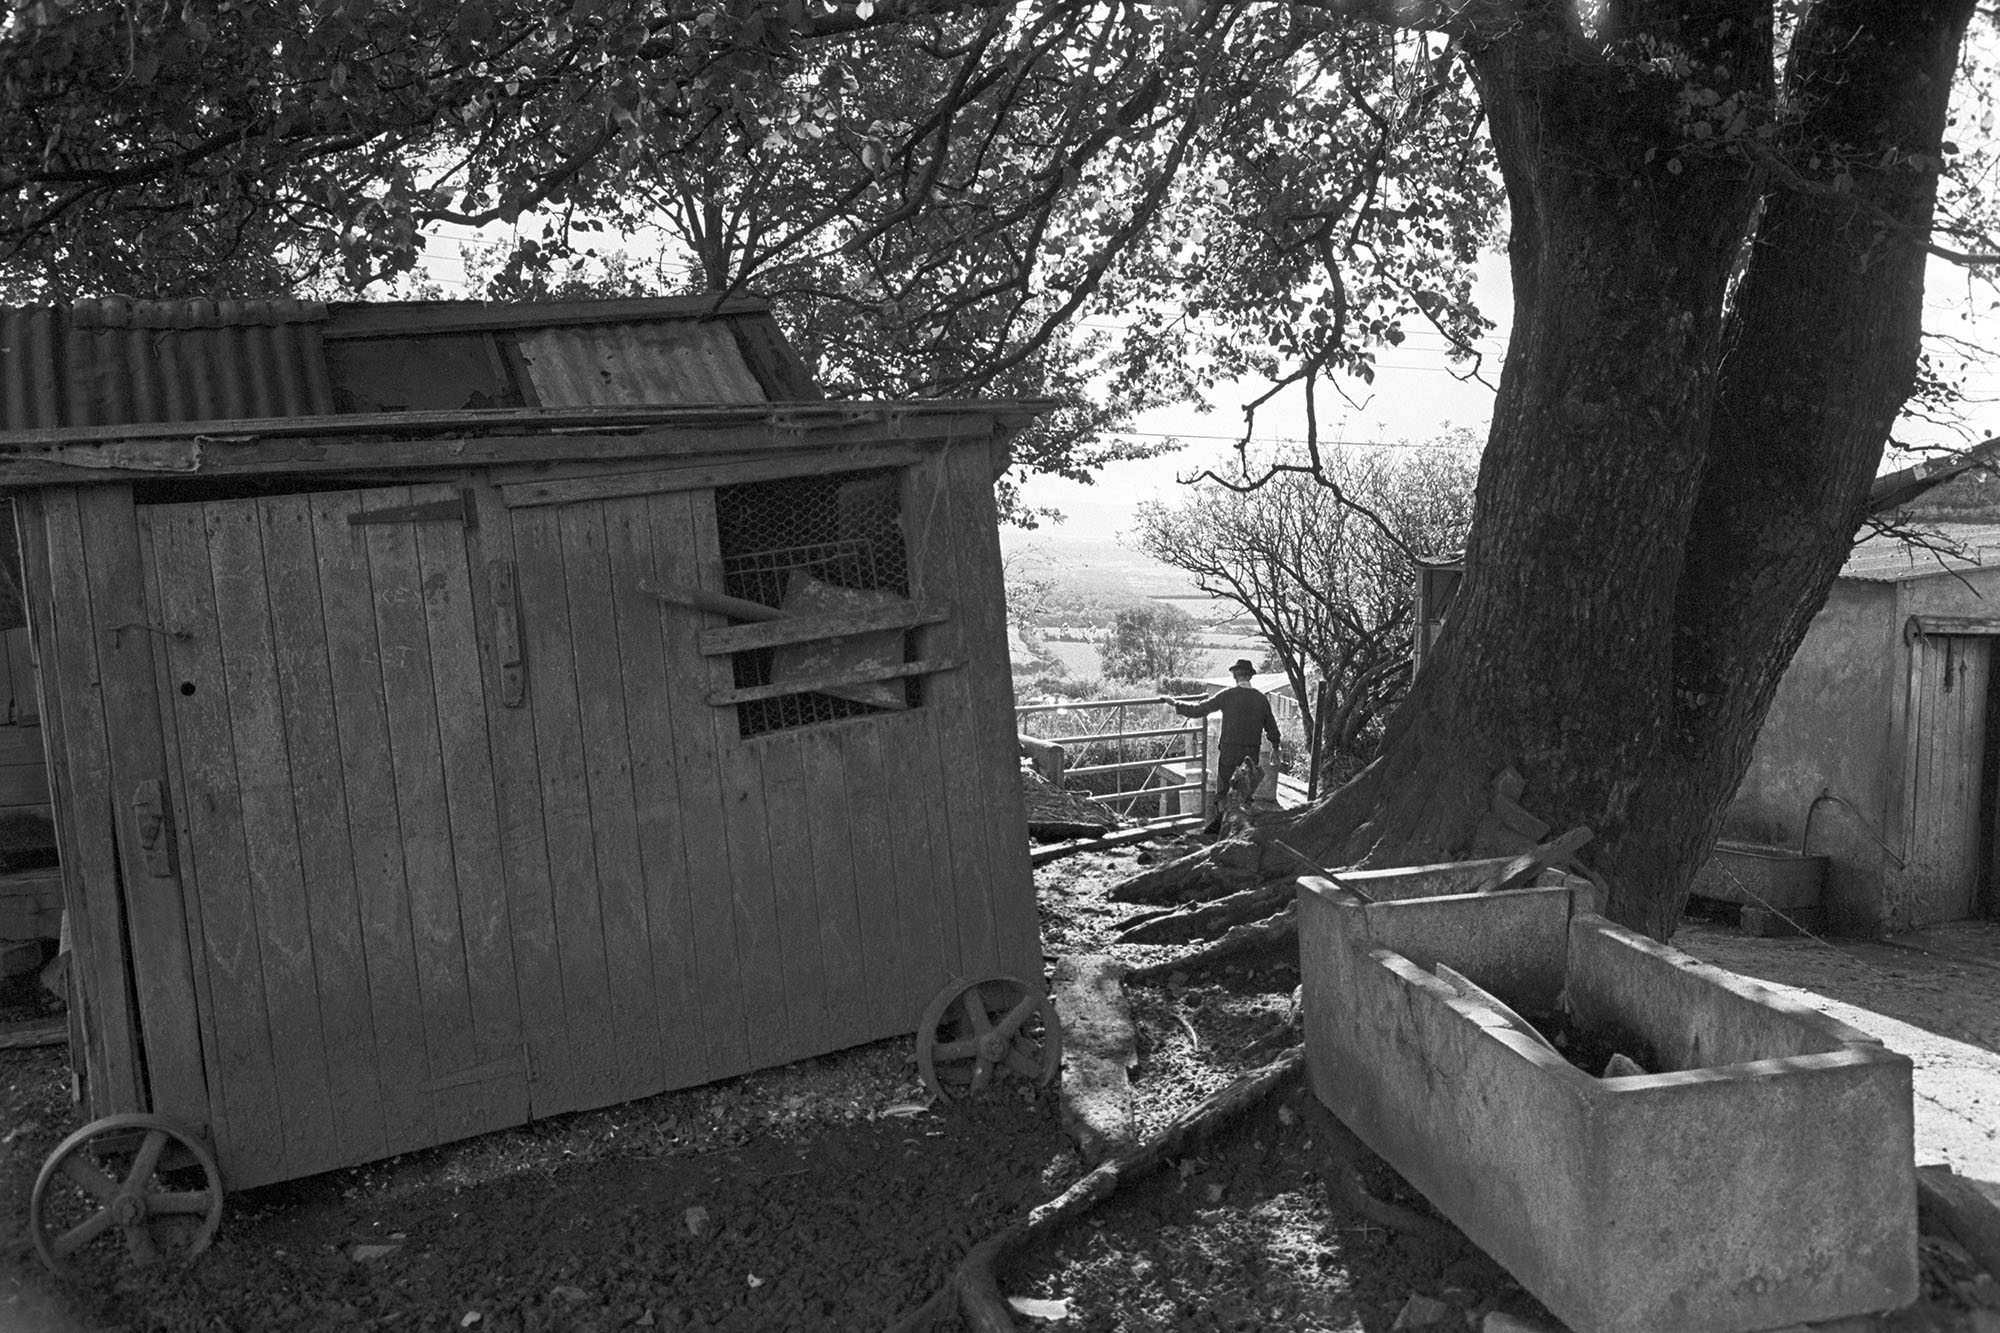 Farmyard chicken house and trough.<br /> [A farmyard with a trough and wooden hen house at Upcott, near Dolton. Fred Folland is resting on a gate to the farmyard.<br /> See the 'Additional Notes by James Ravilious' field for more information.]